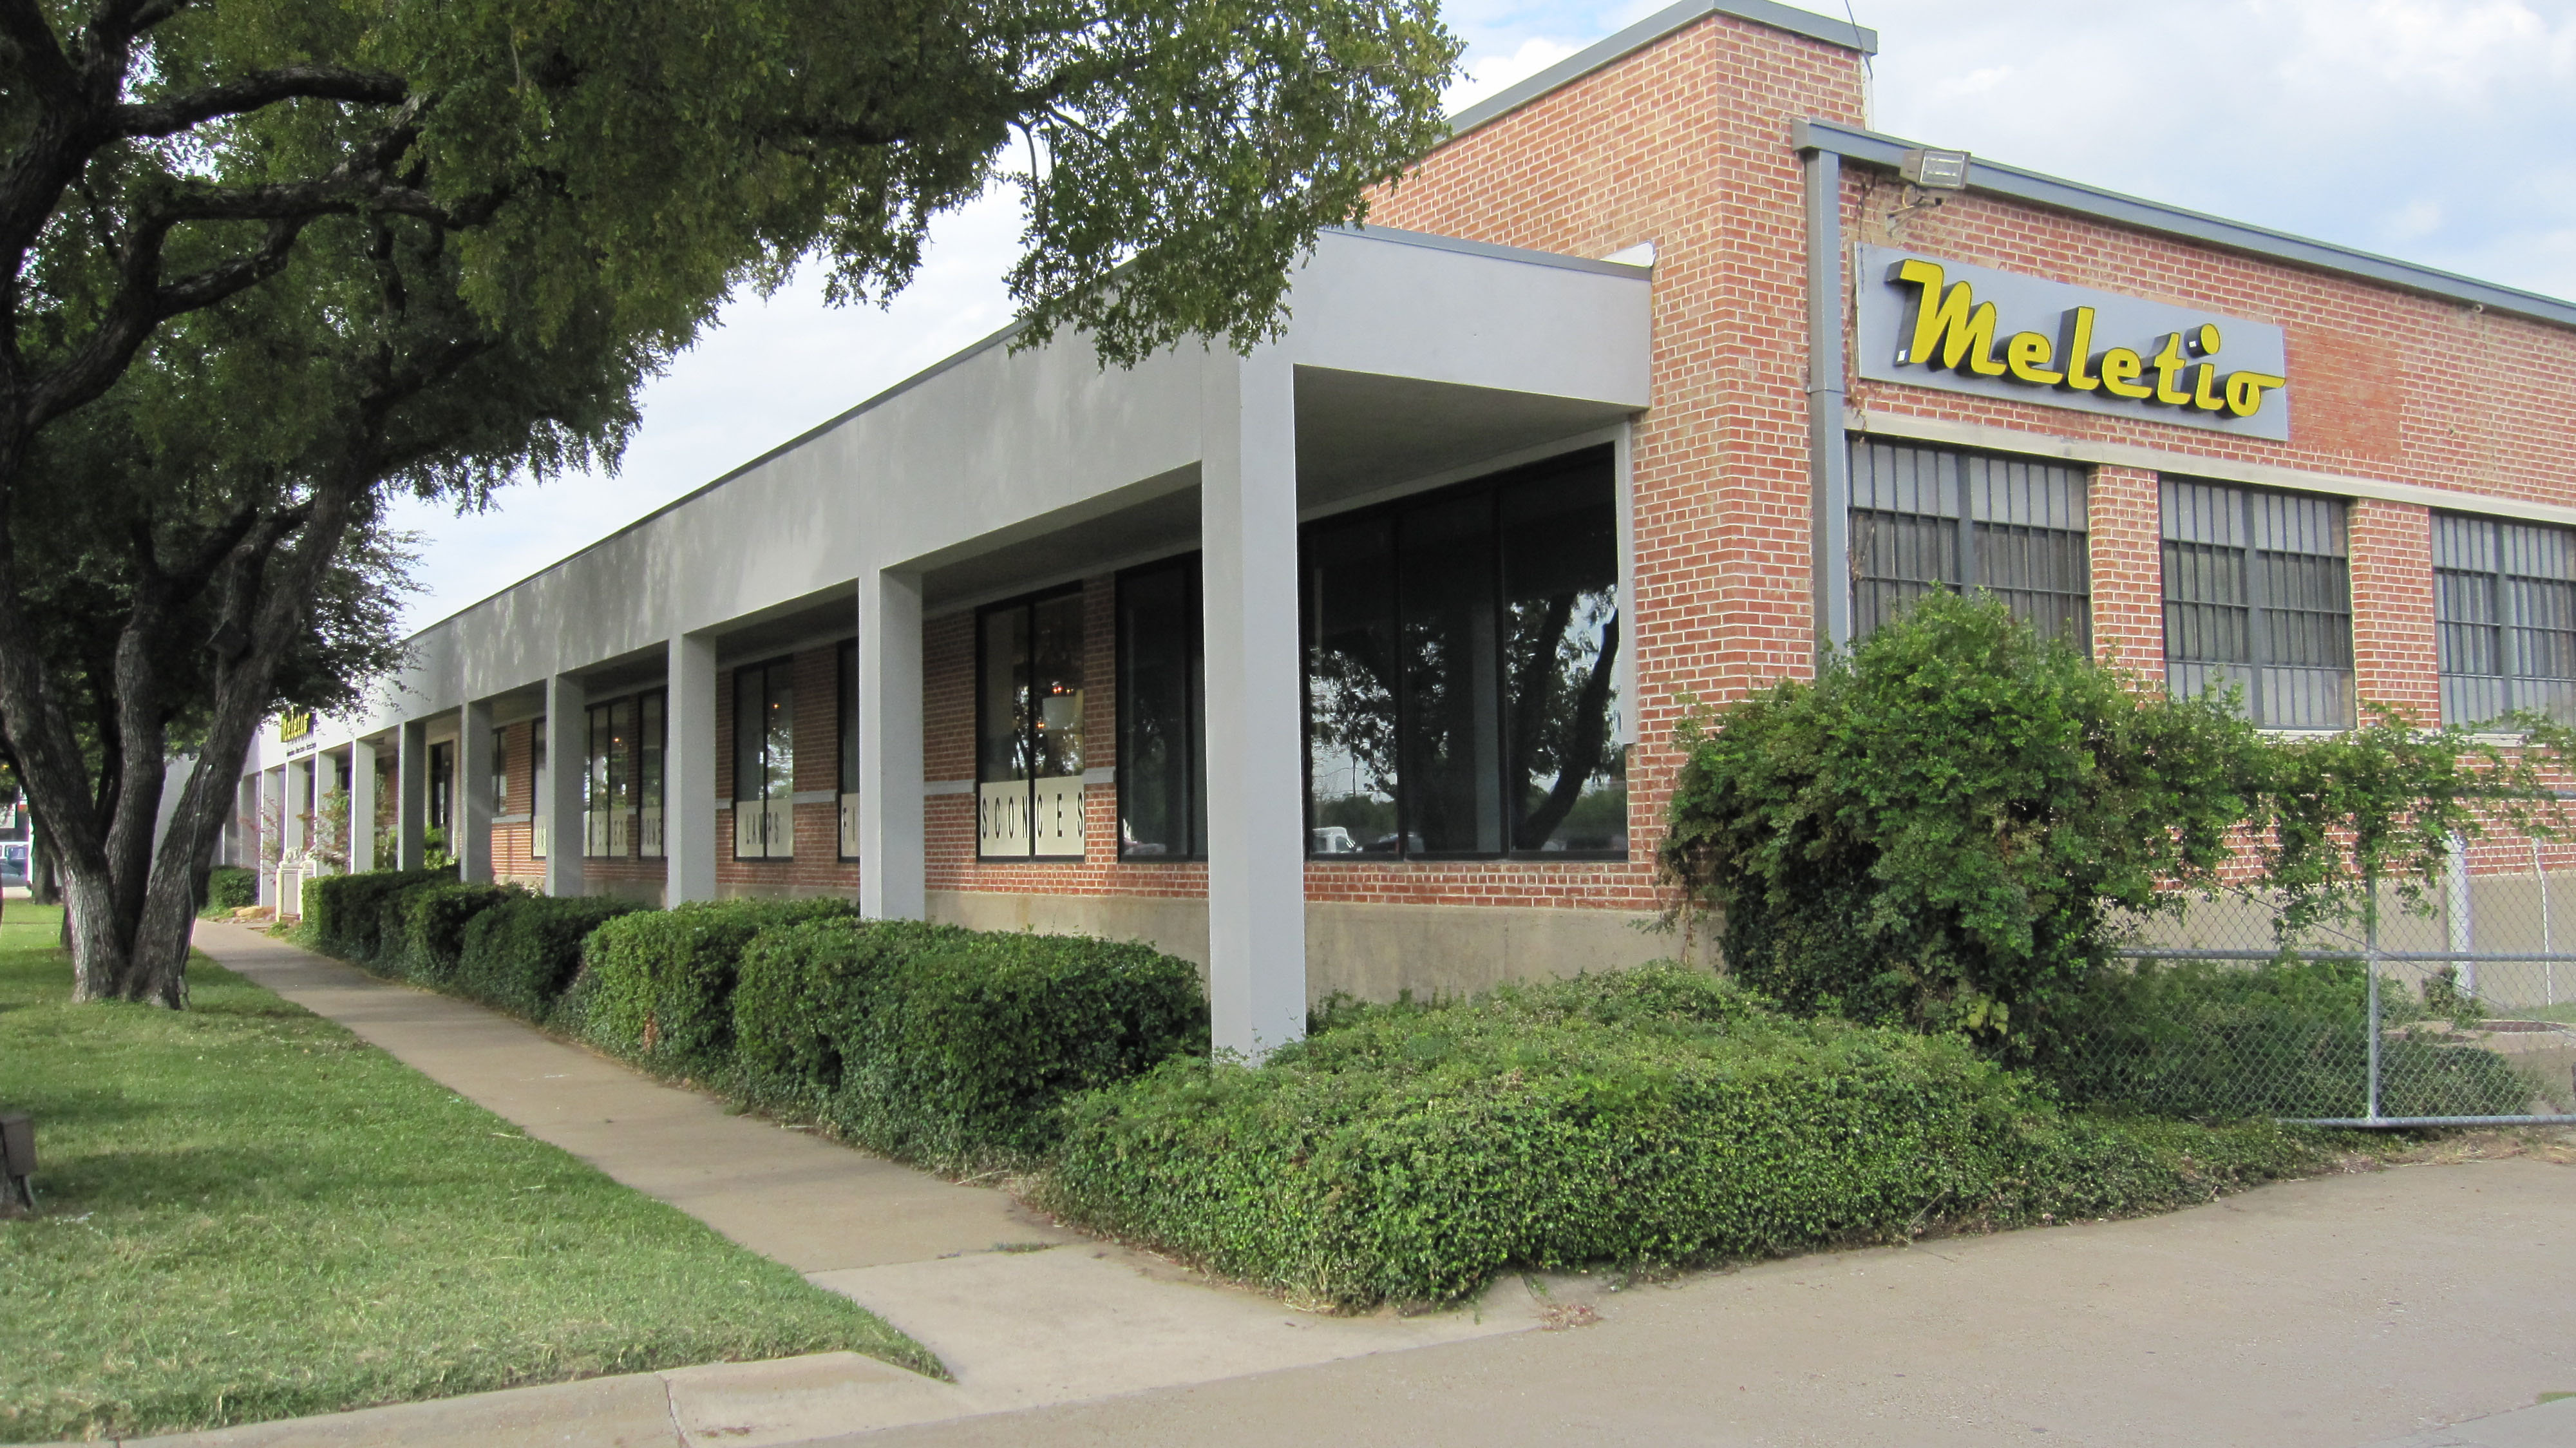 meletio s lighting electrical supply dallas fort worth metro